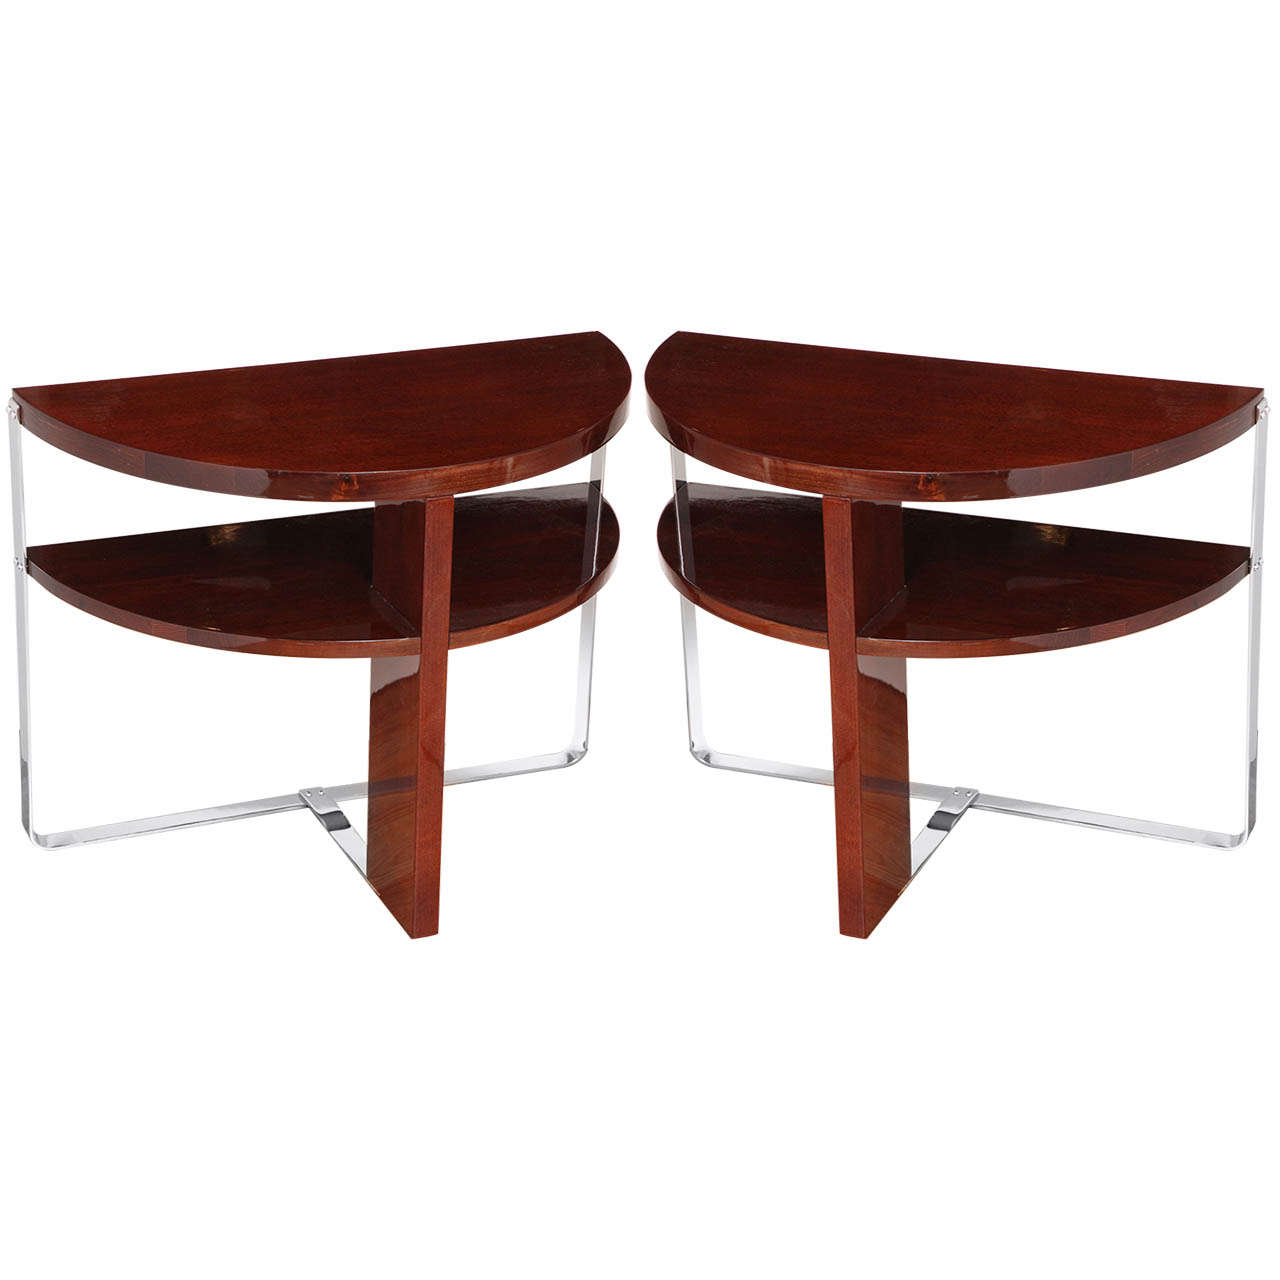 Elegant Pair Of Machine Age Art Deco Side Tables In The Style Of Donald Deskey 1